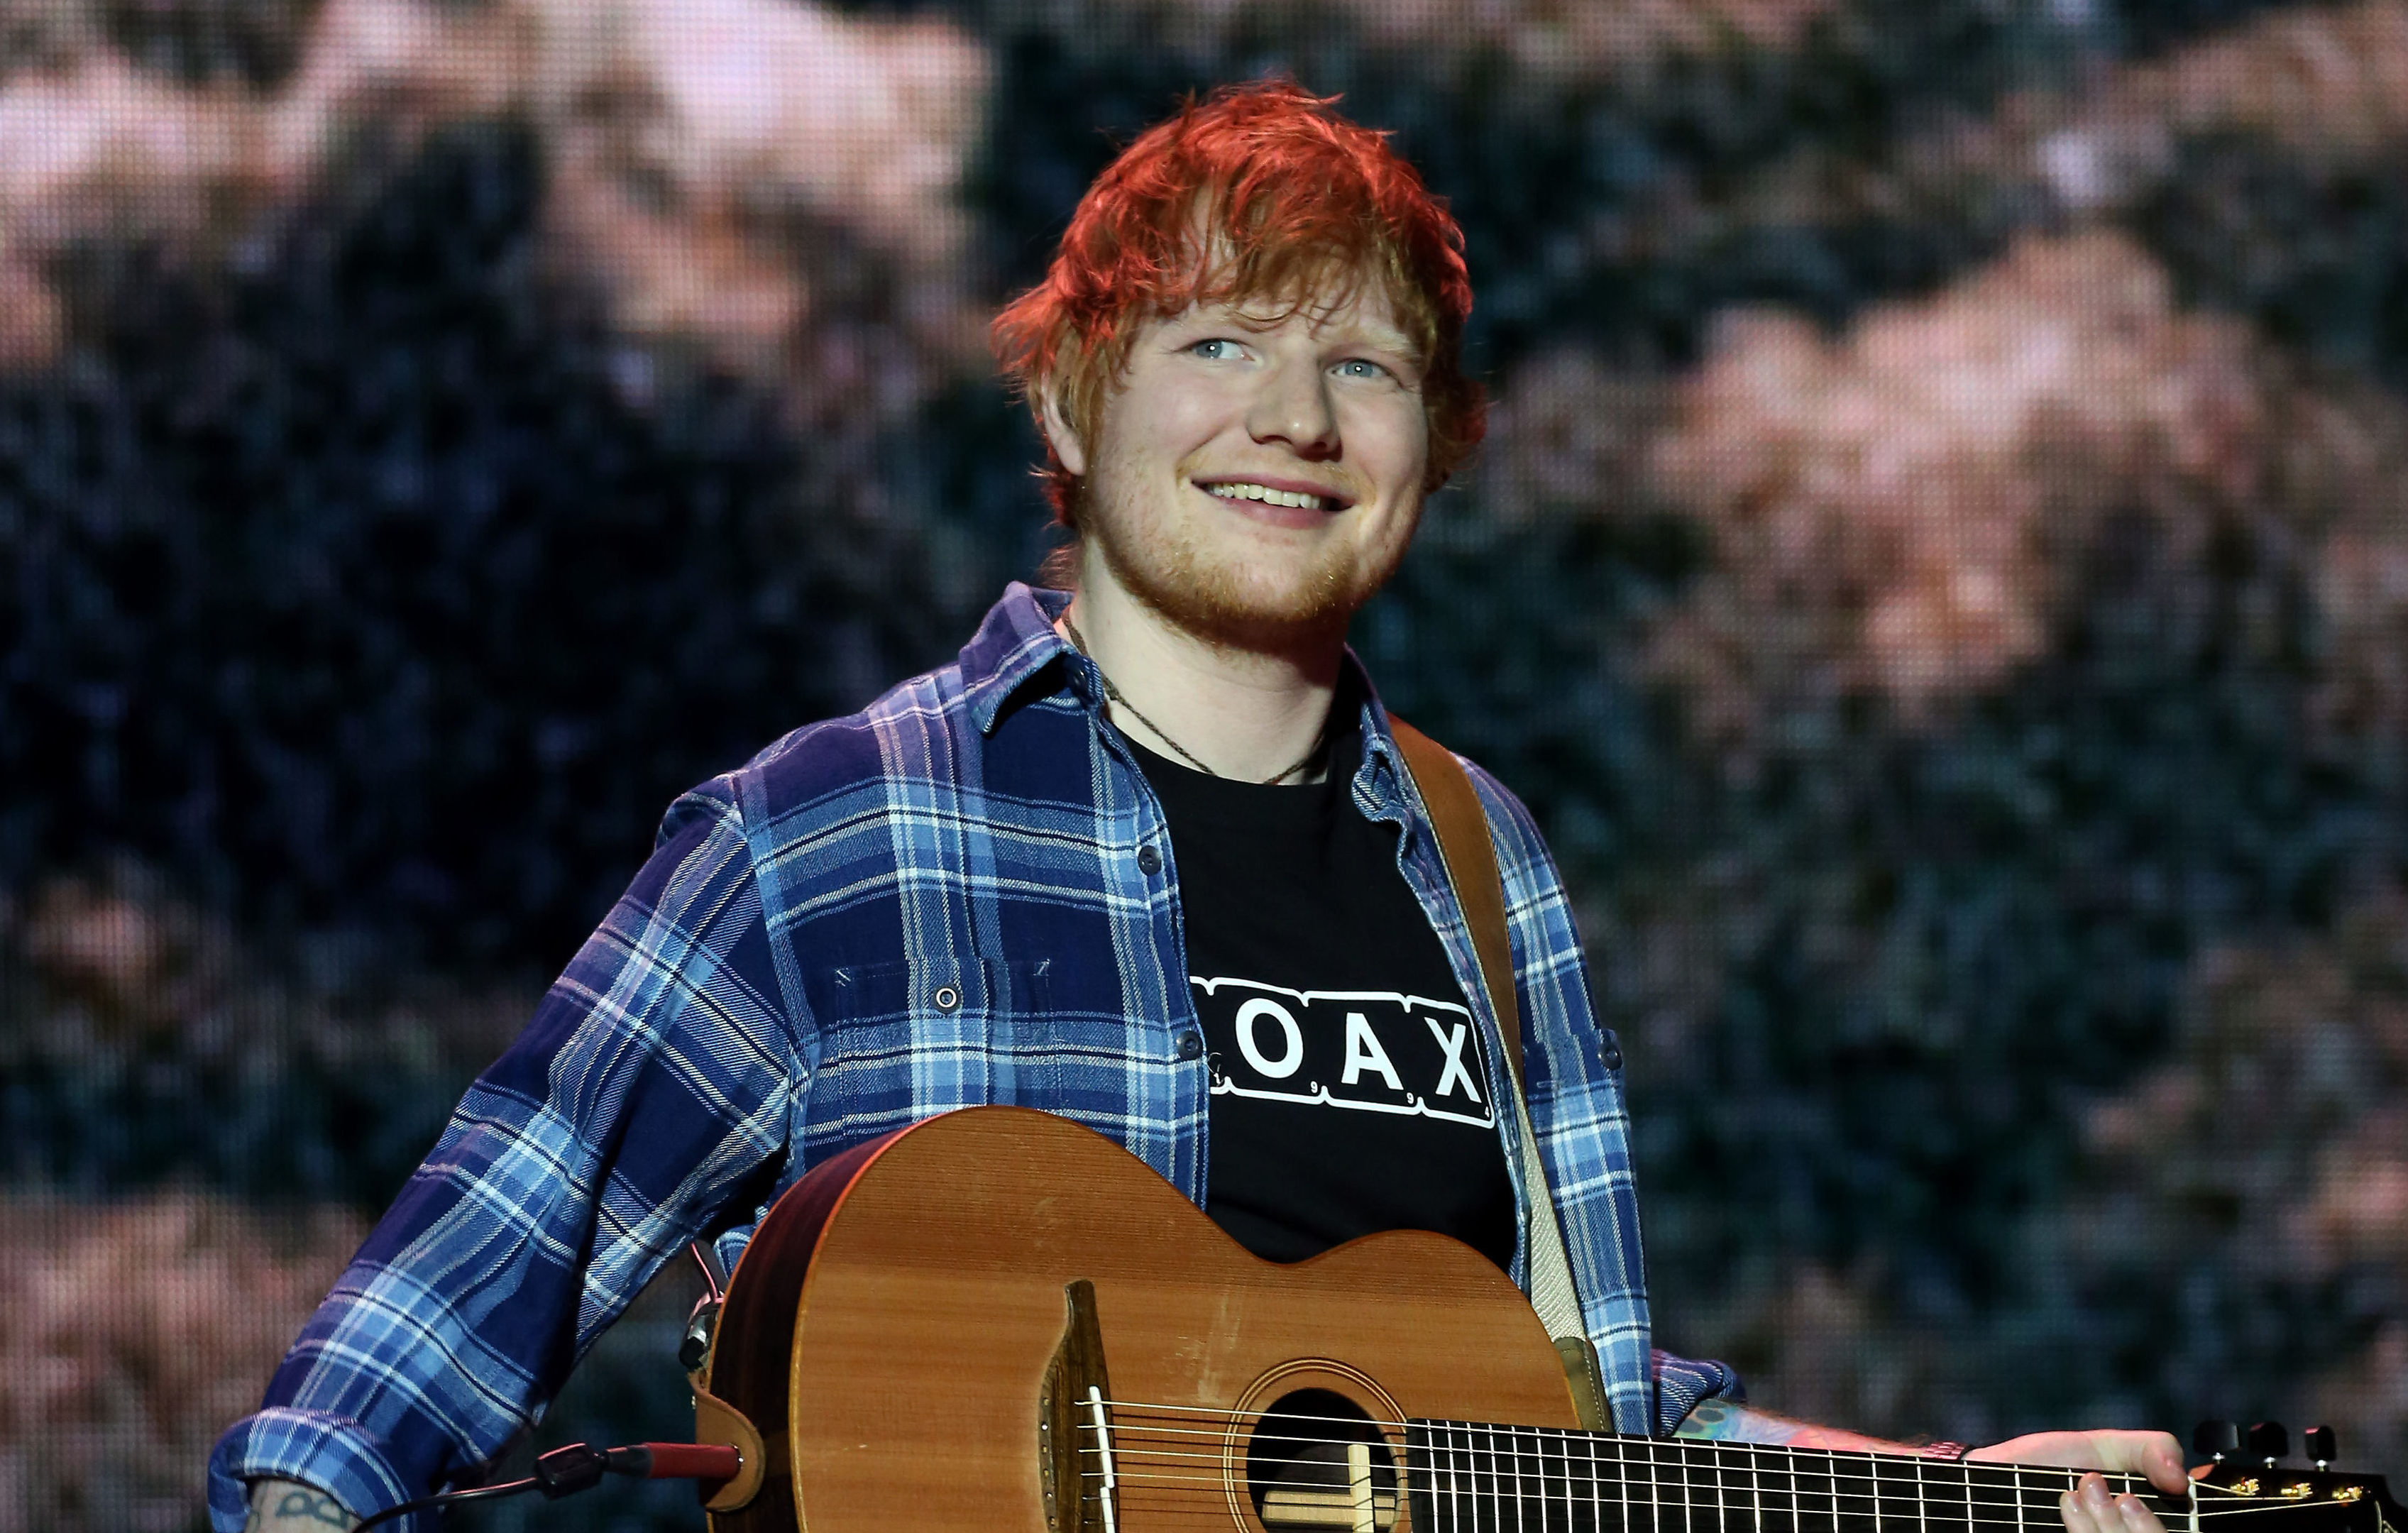 Ed Sheeran backed the fightback against touts